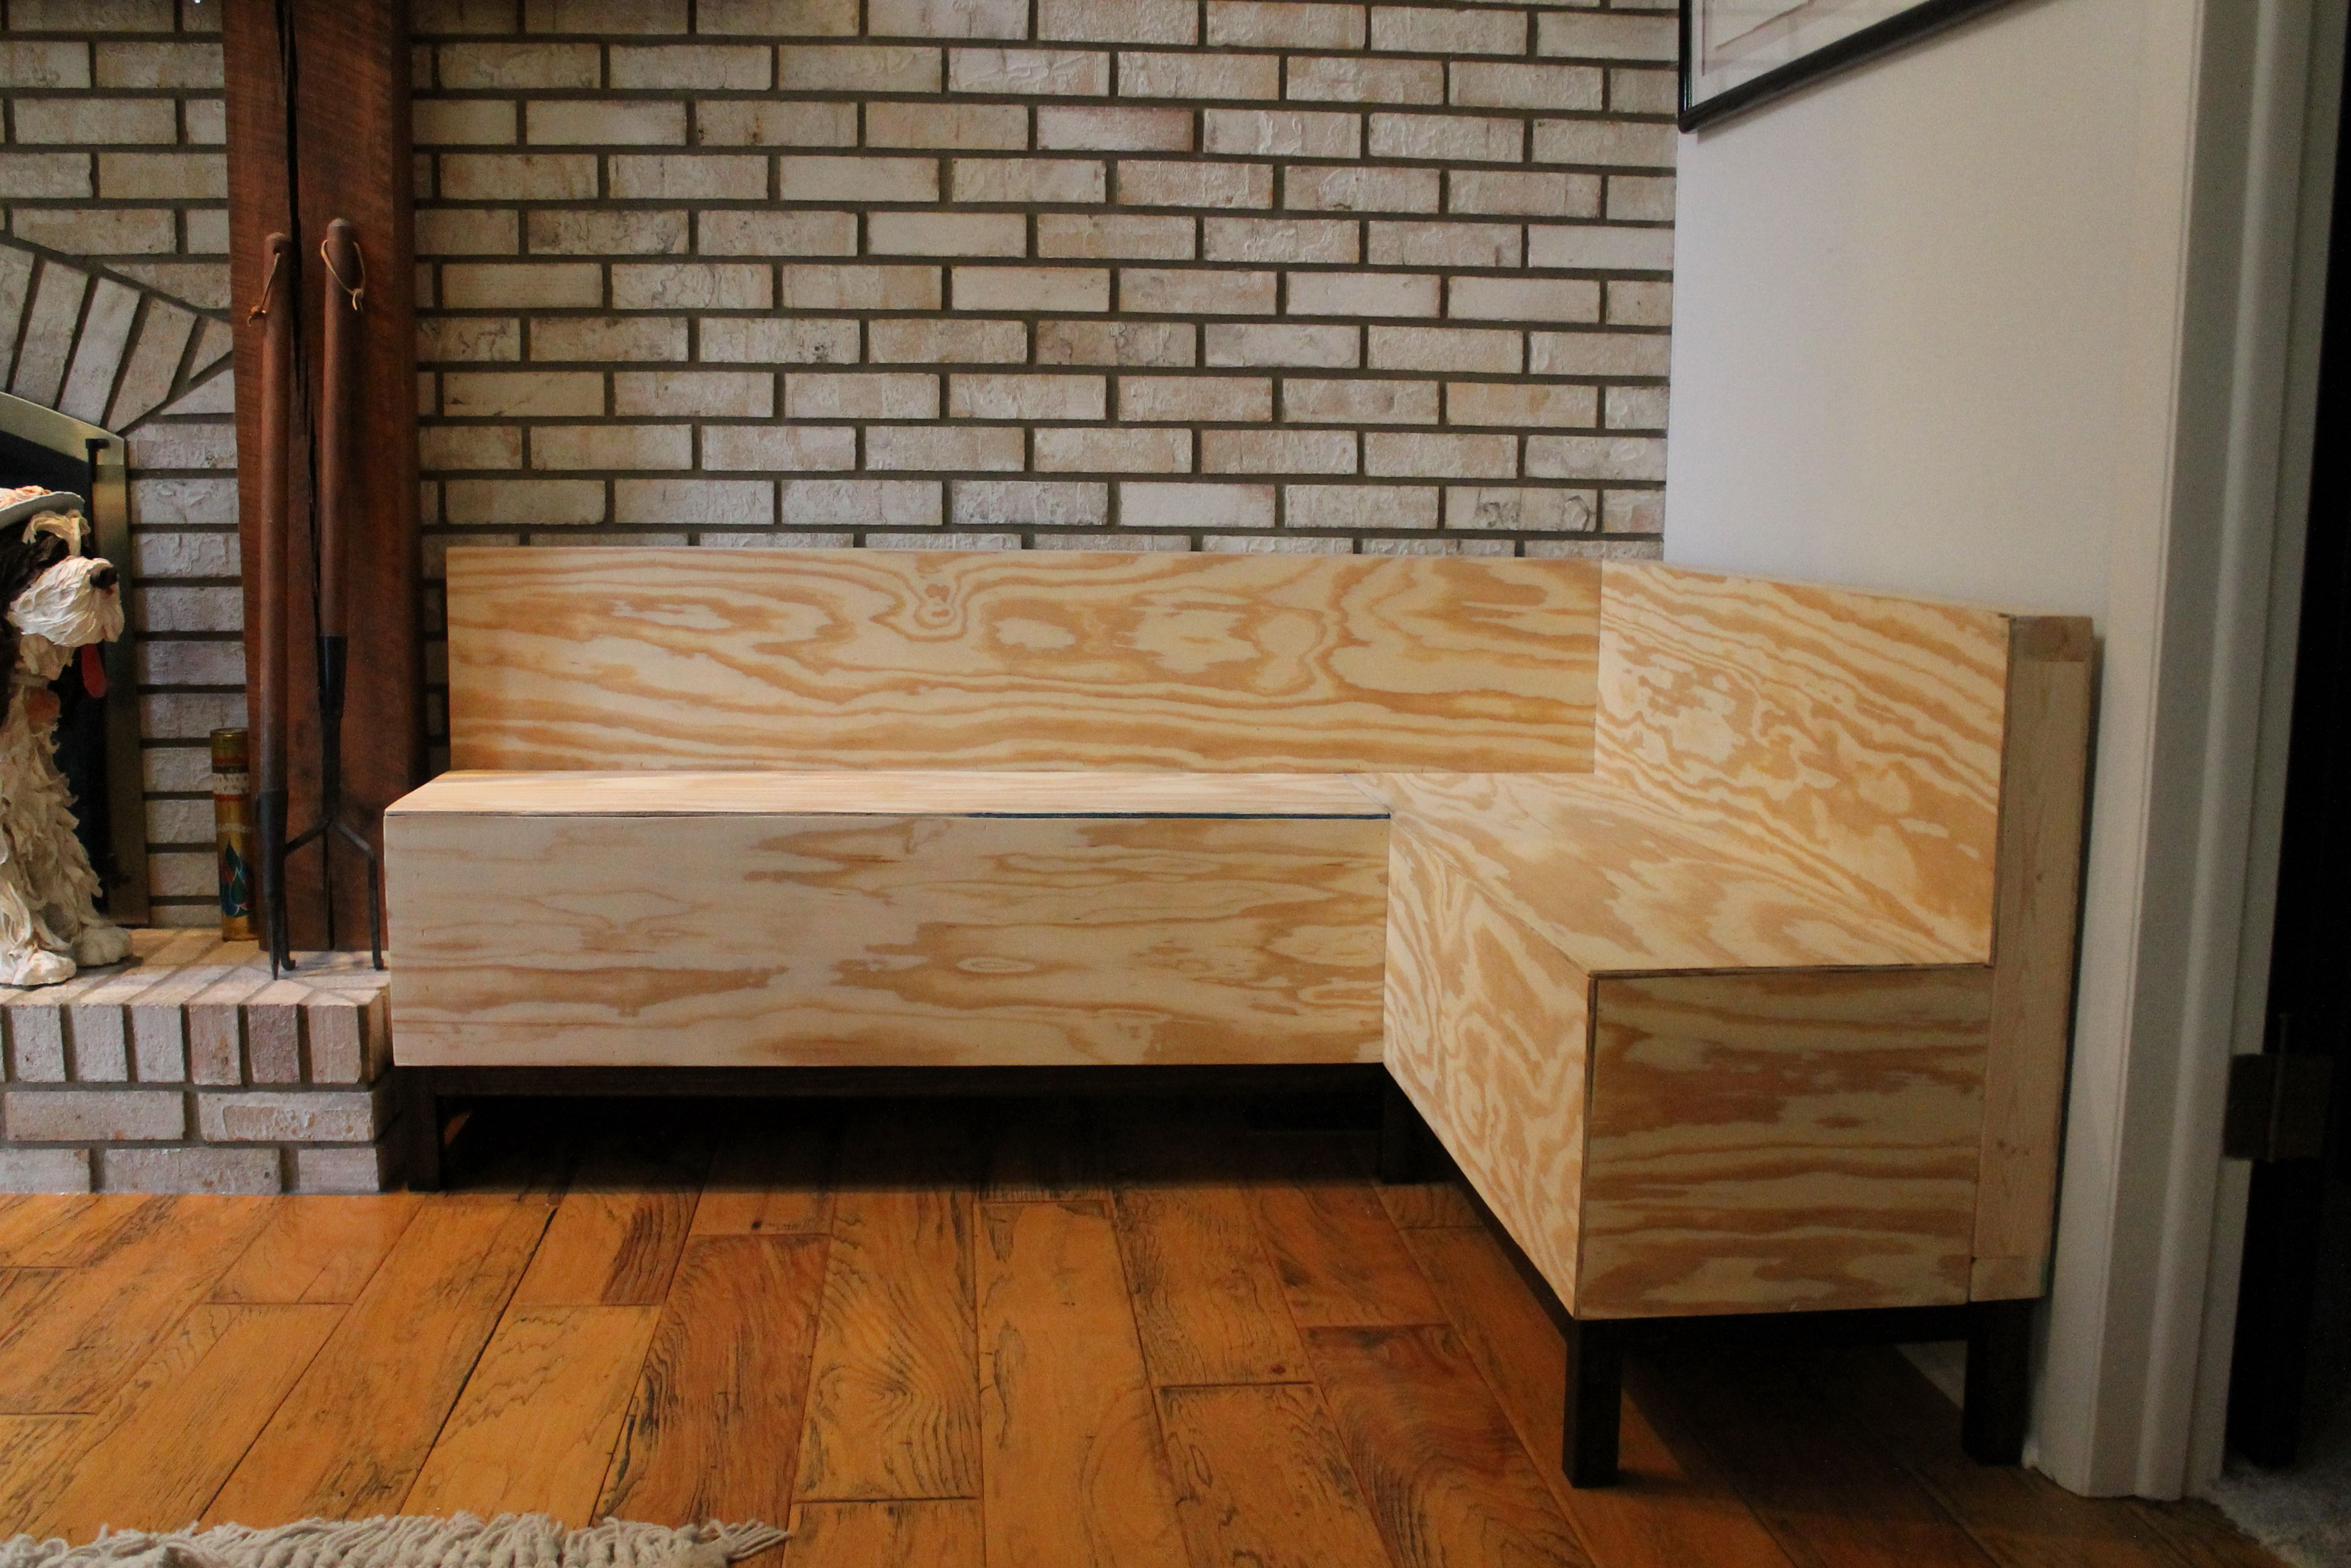 Image result for wood restaurant bench with leather cushion